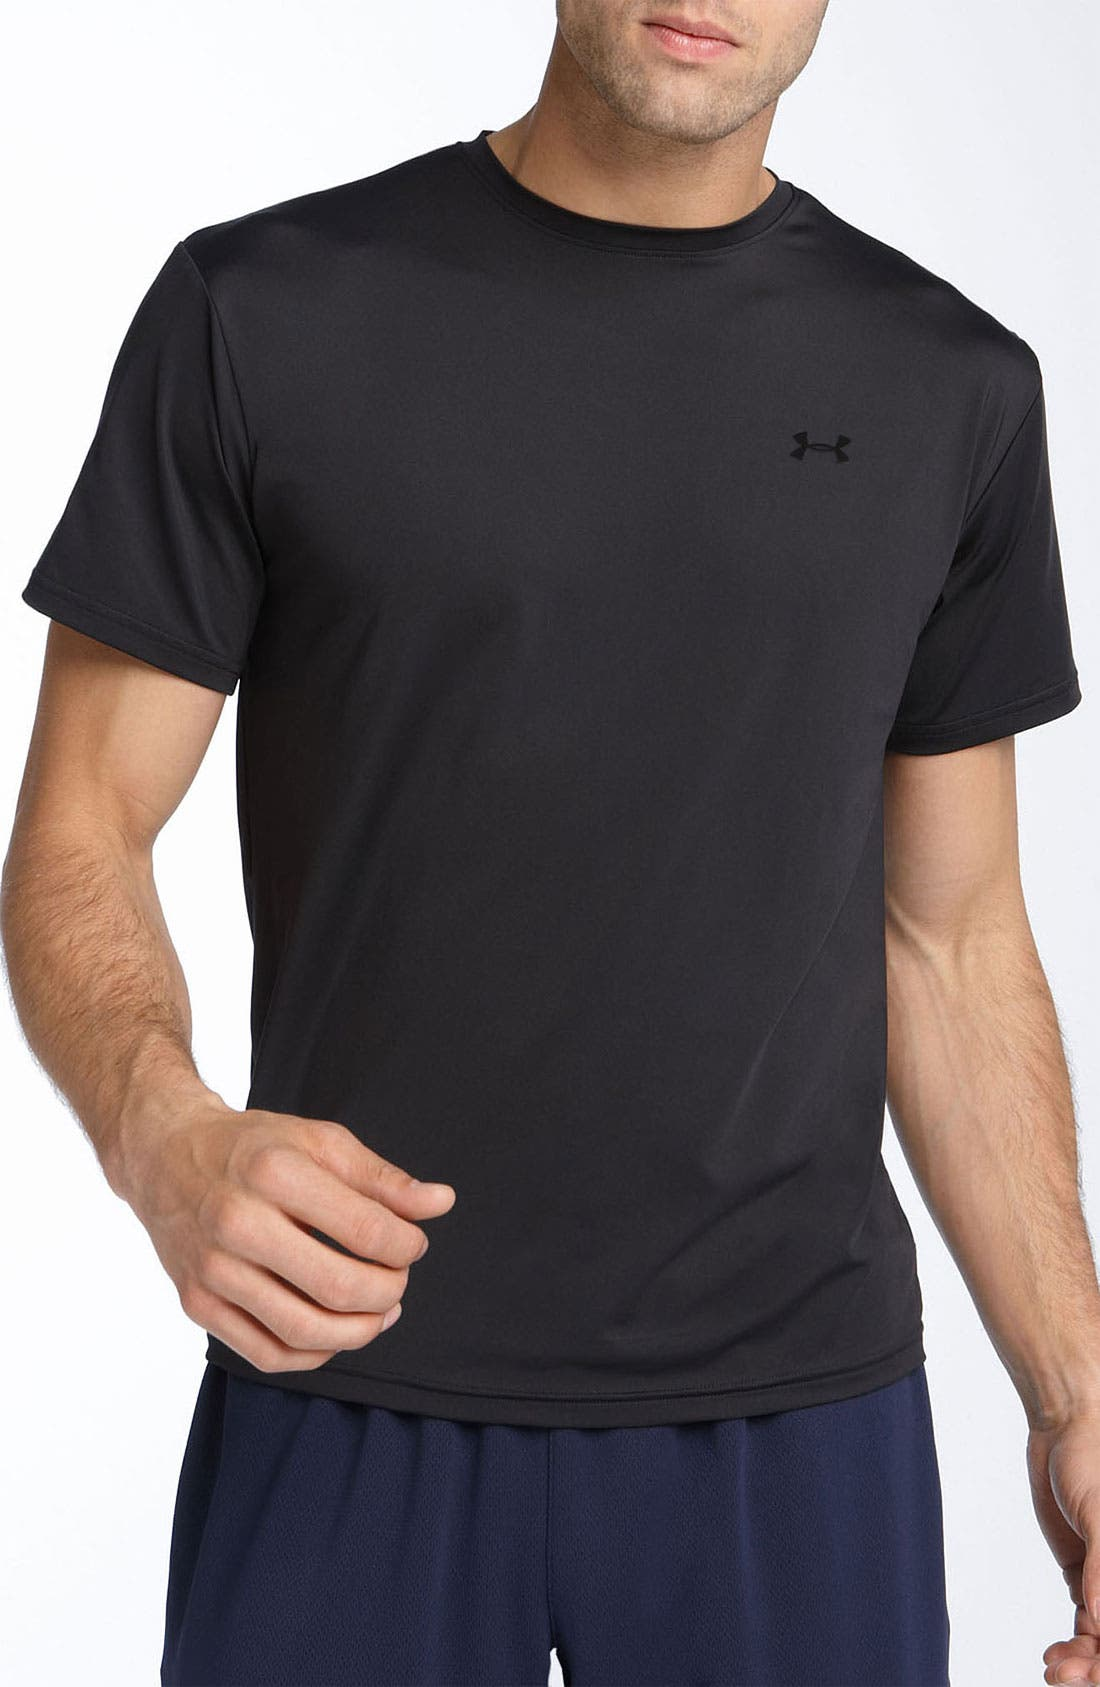 Main Image - Under Armour 'O Series' T-Shirt